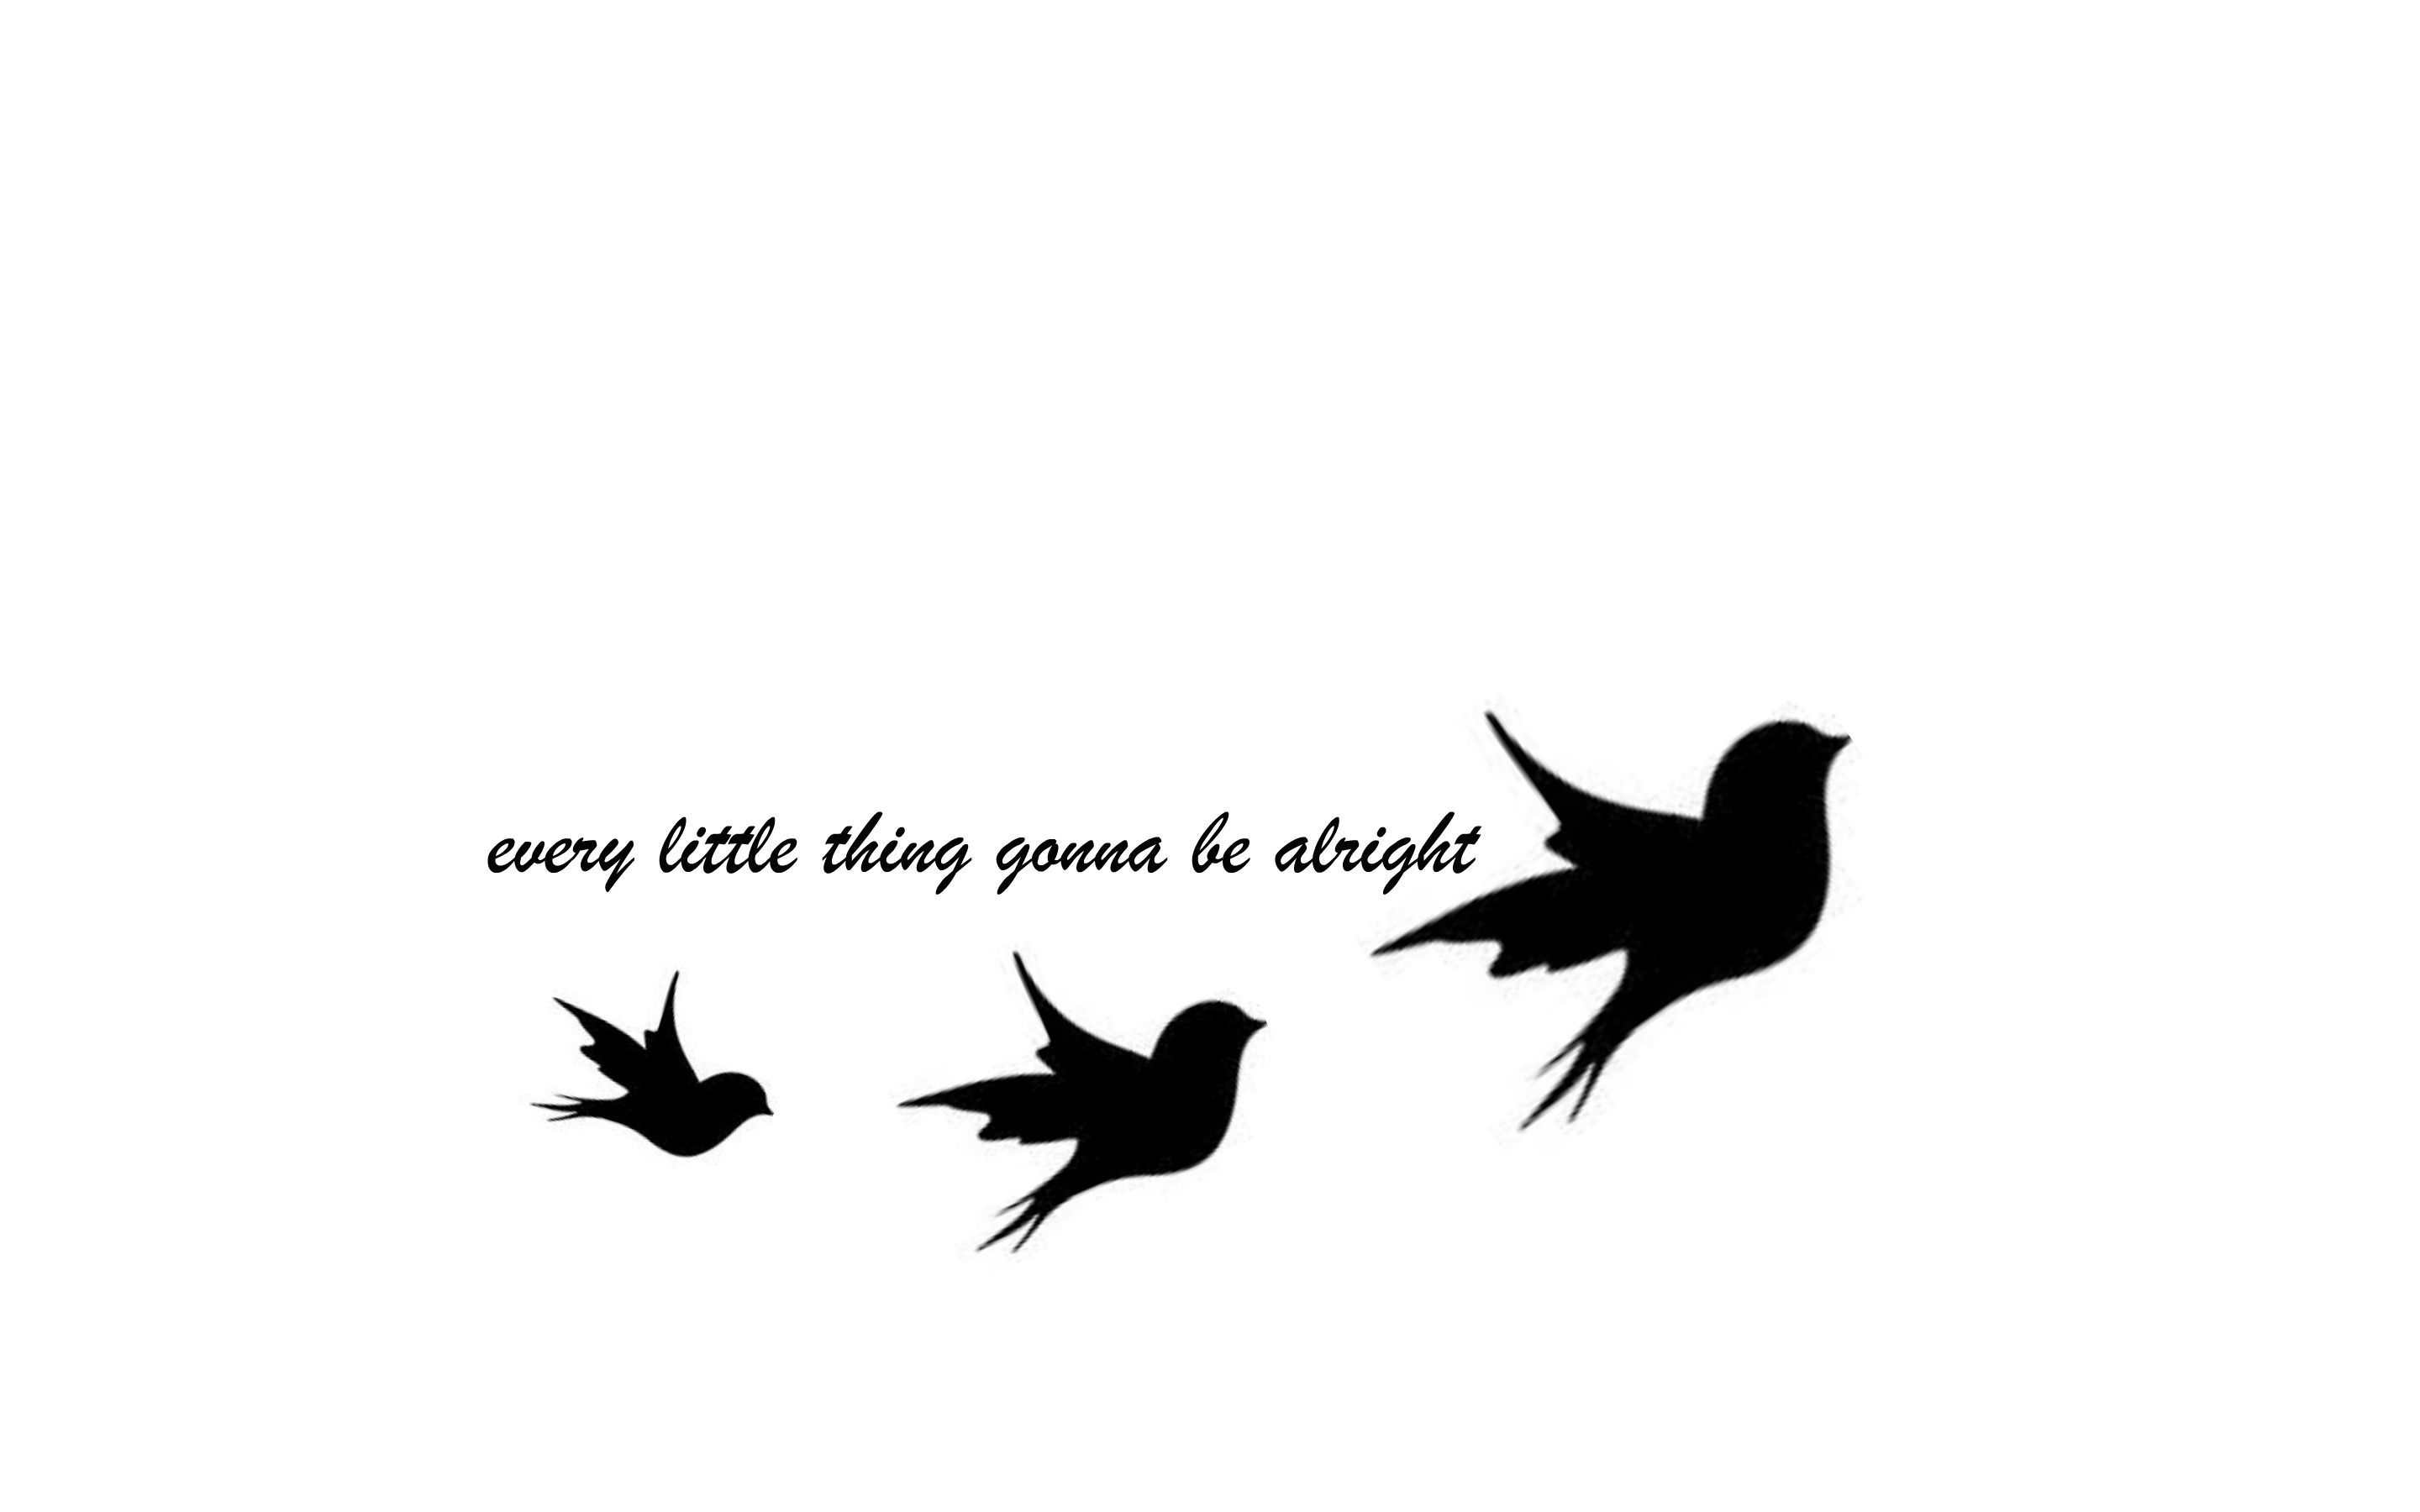 Tattoo Bob Marley Three Little Birds Tats Little Bird Tattoos regarding measurements 2880 X 1800